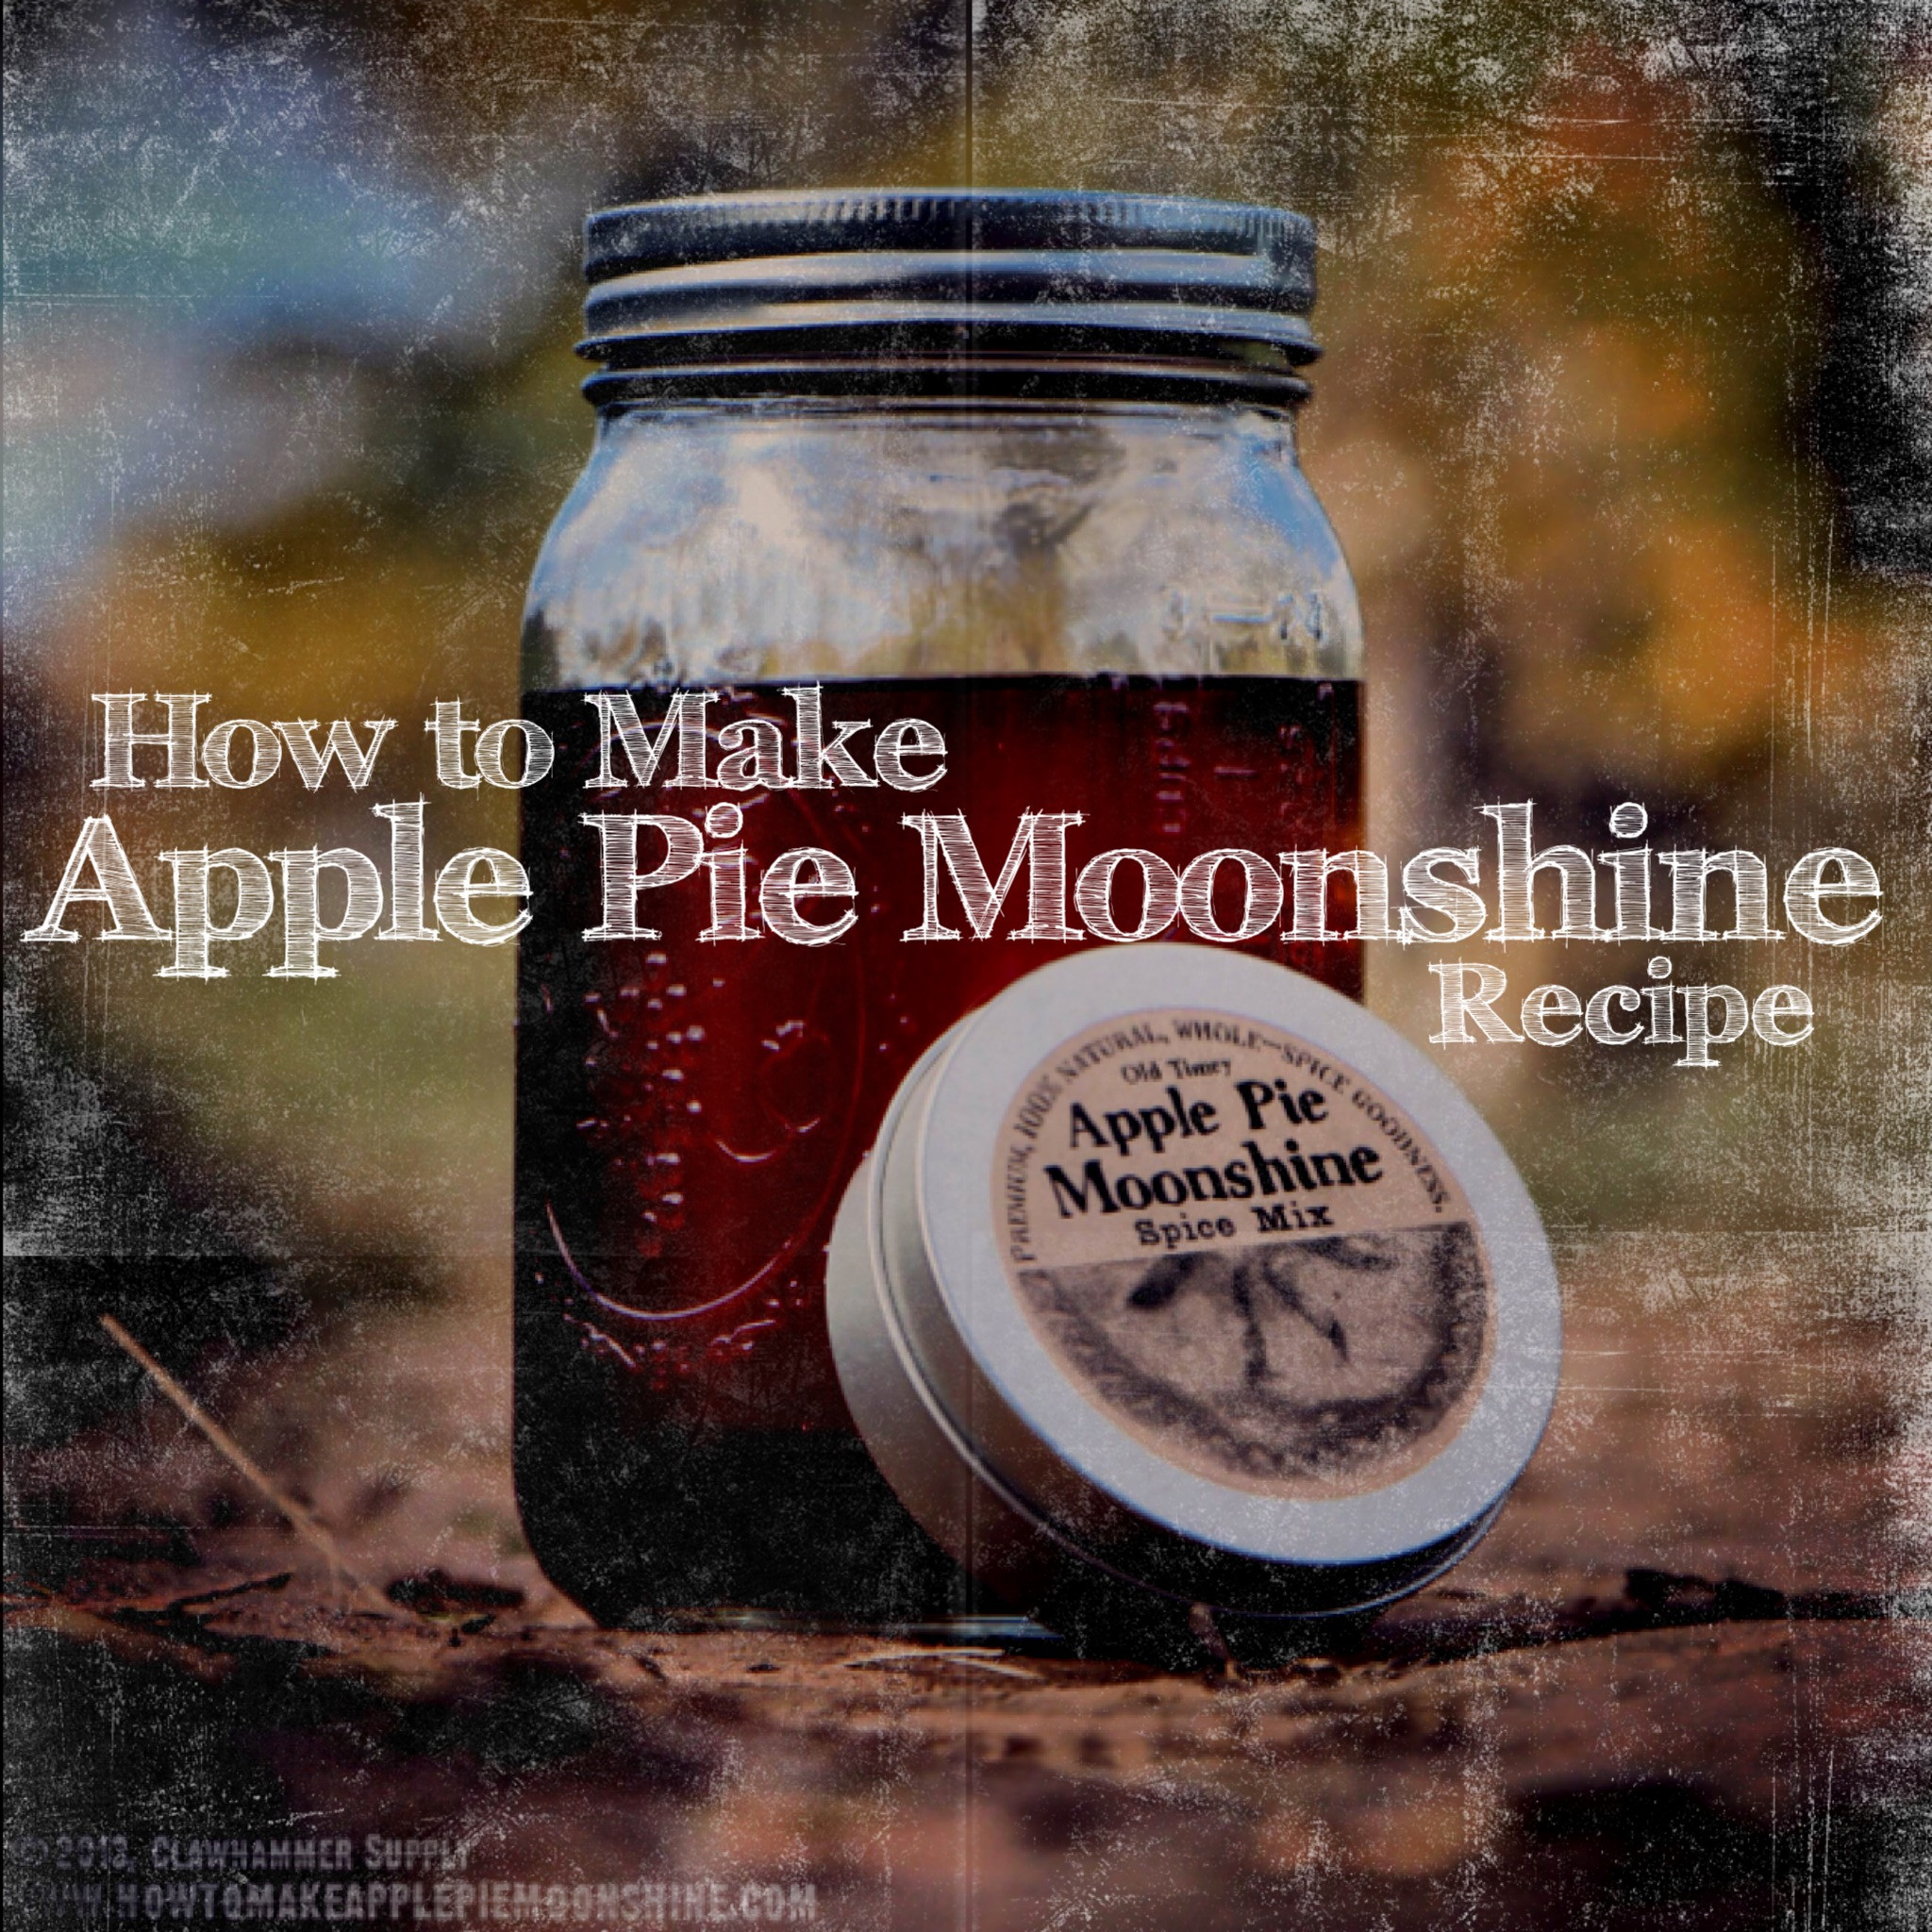 Does Apple Pie Need To Be Refrigerated  Does Homemade Apple Pie Moonshine Need To Be Refrigerated